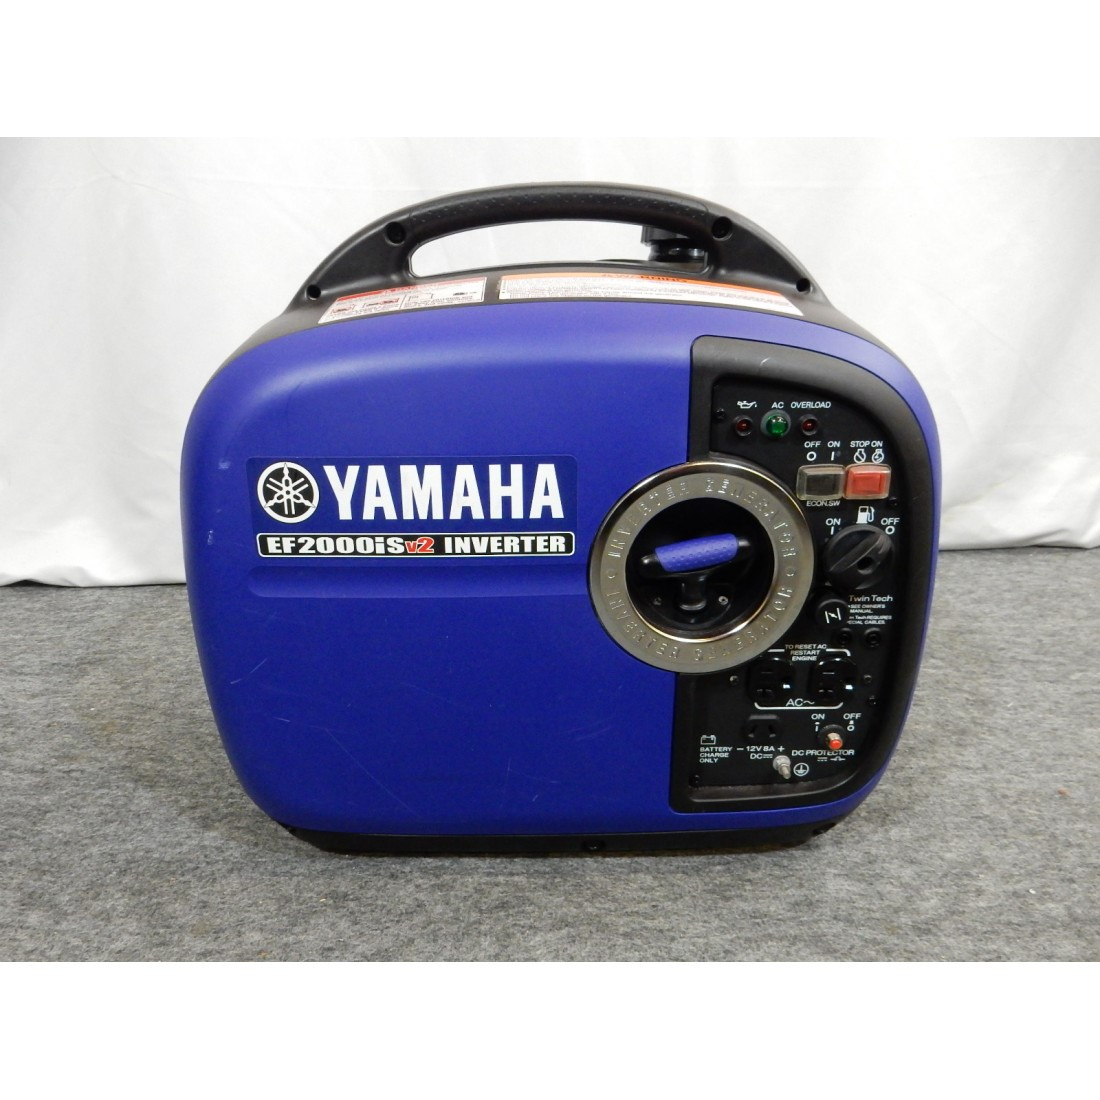 1st model is Yamaha EF2000iSv2 Bike, 1600 Running Watts/2000 starting Watts, Gas powering portable inverter